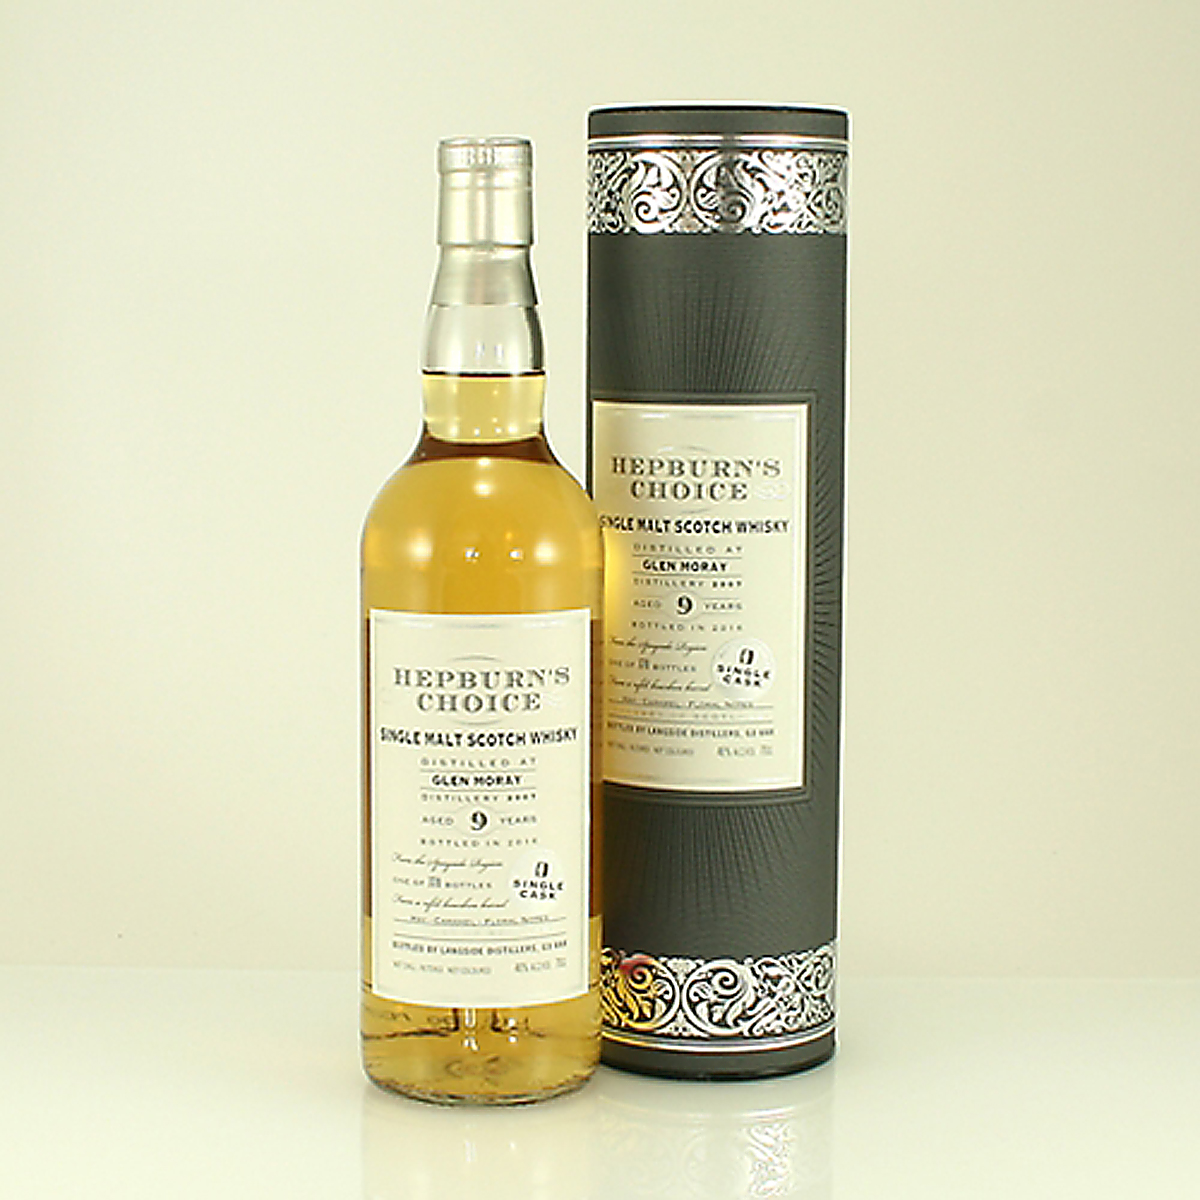 GLEN MORAY 9 Y/O Hepburns Choice 46% 70cl